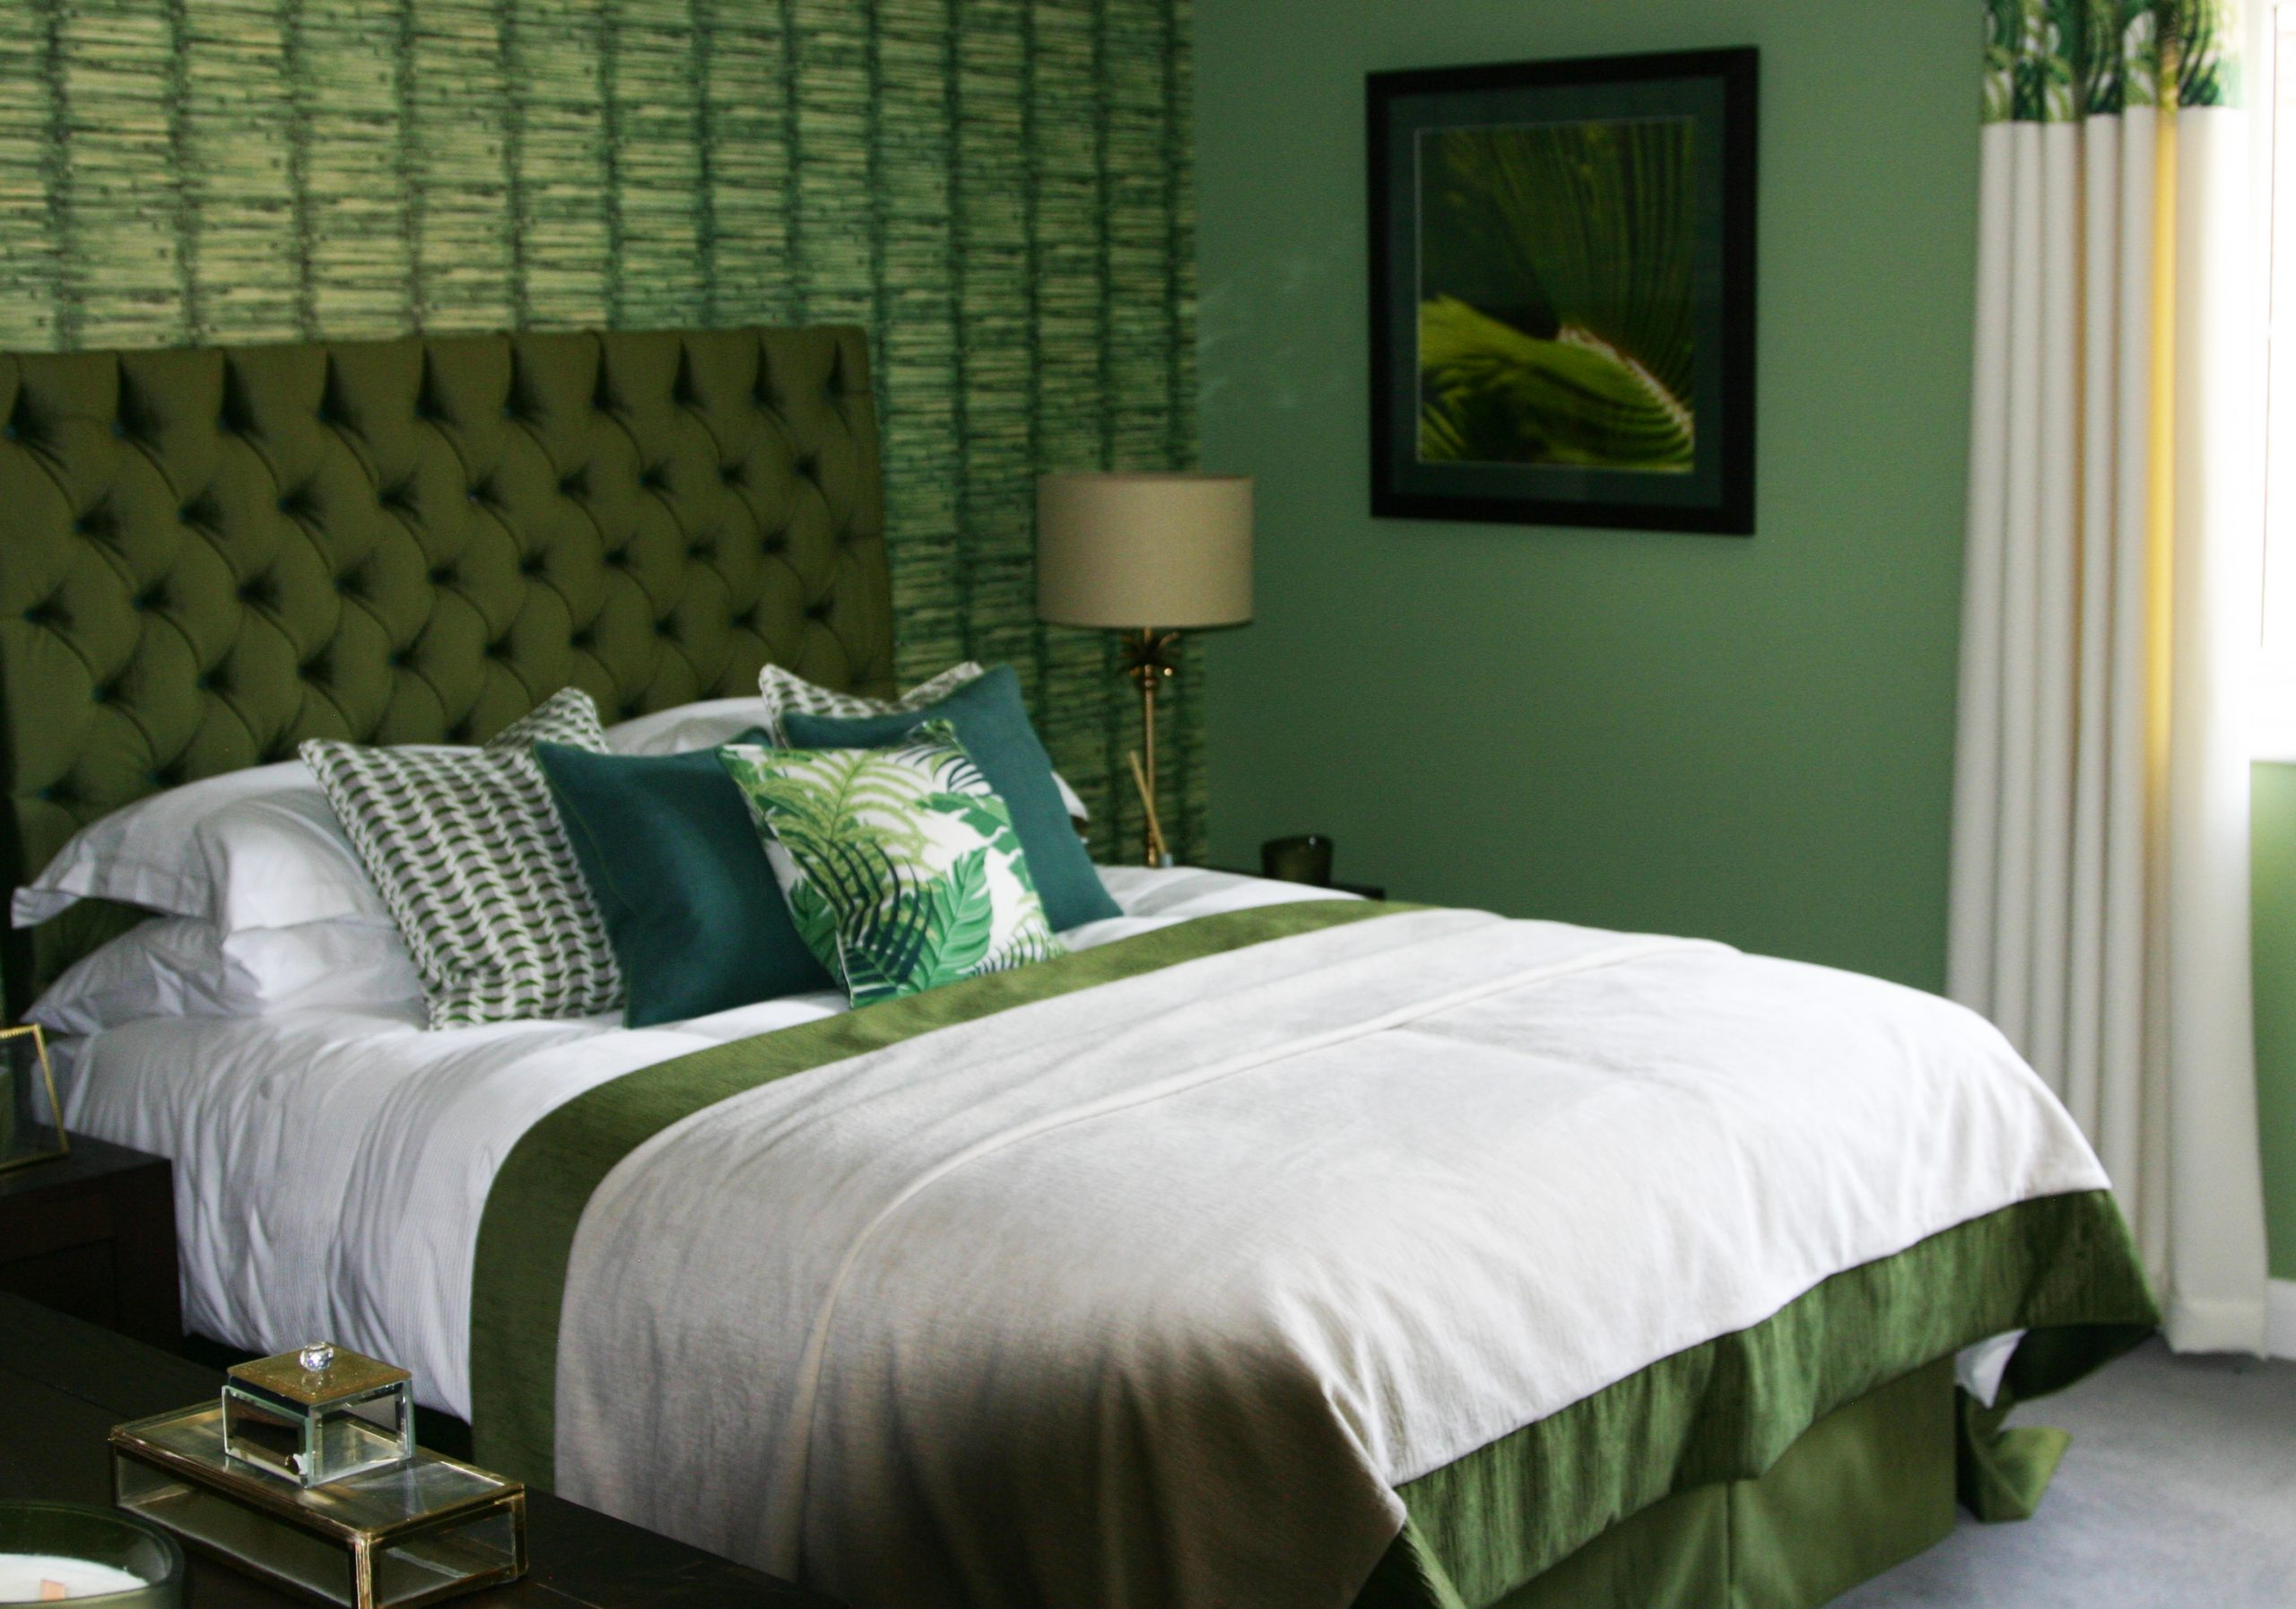 Bedroom with different shades of green used for the interiors, Plough Meadow